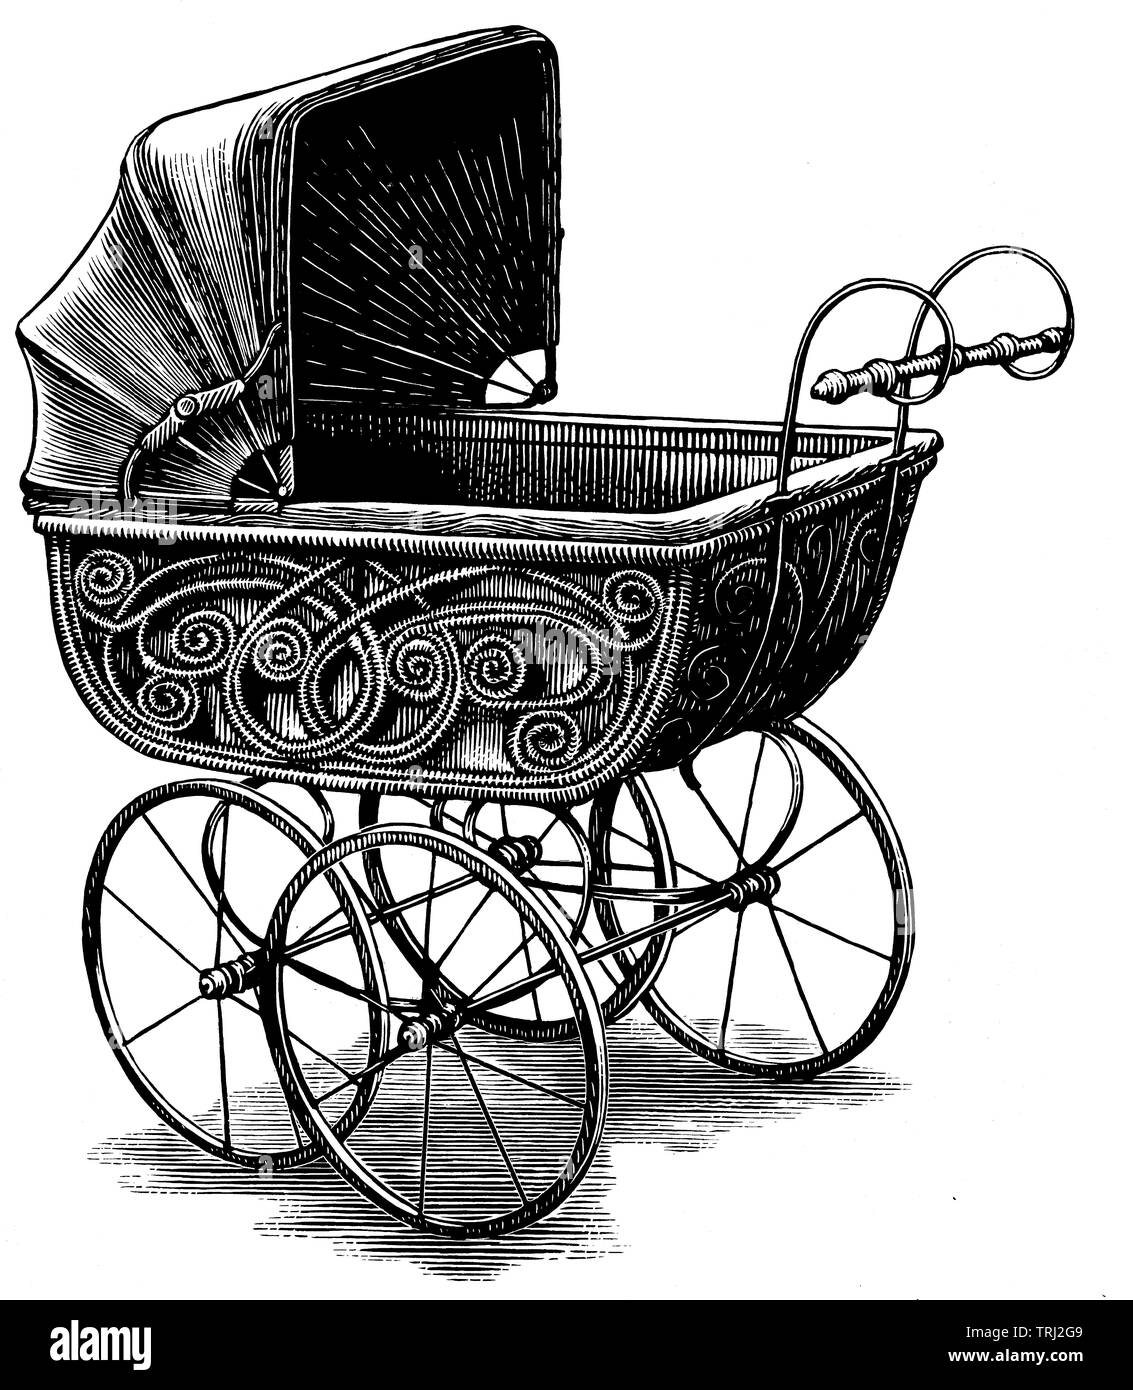 Old fashioned baby stroller - Stock Image